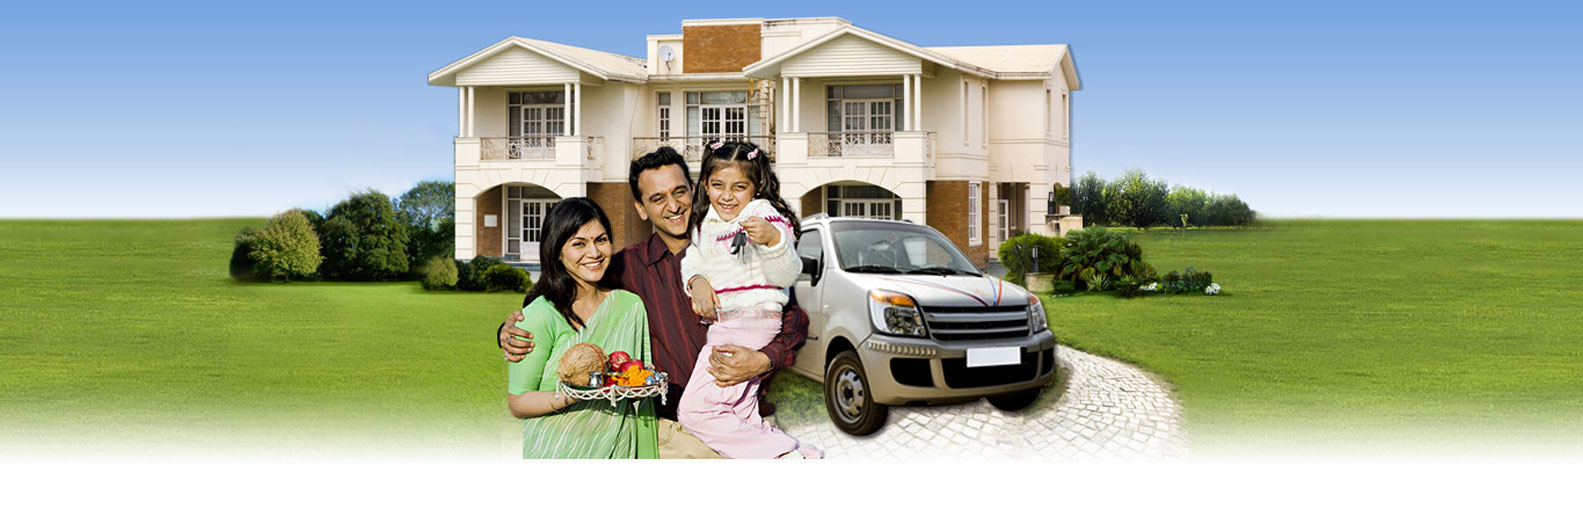 new india finance co home company offers comprehensive range of